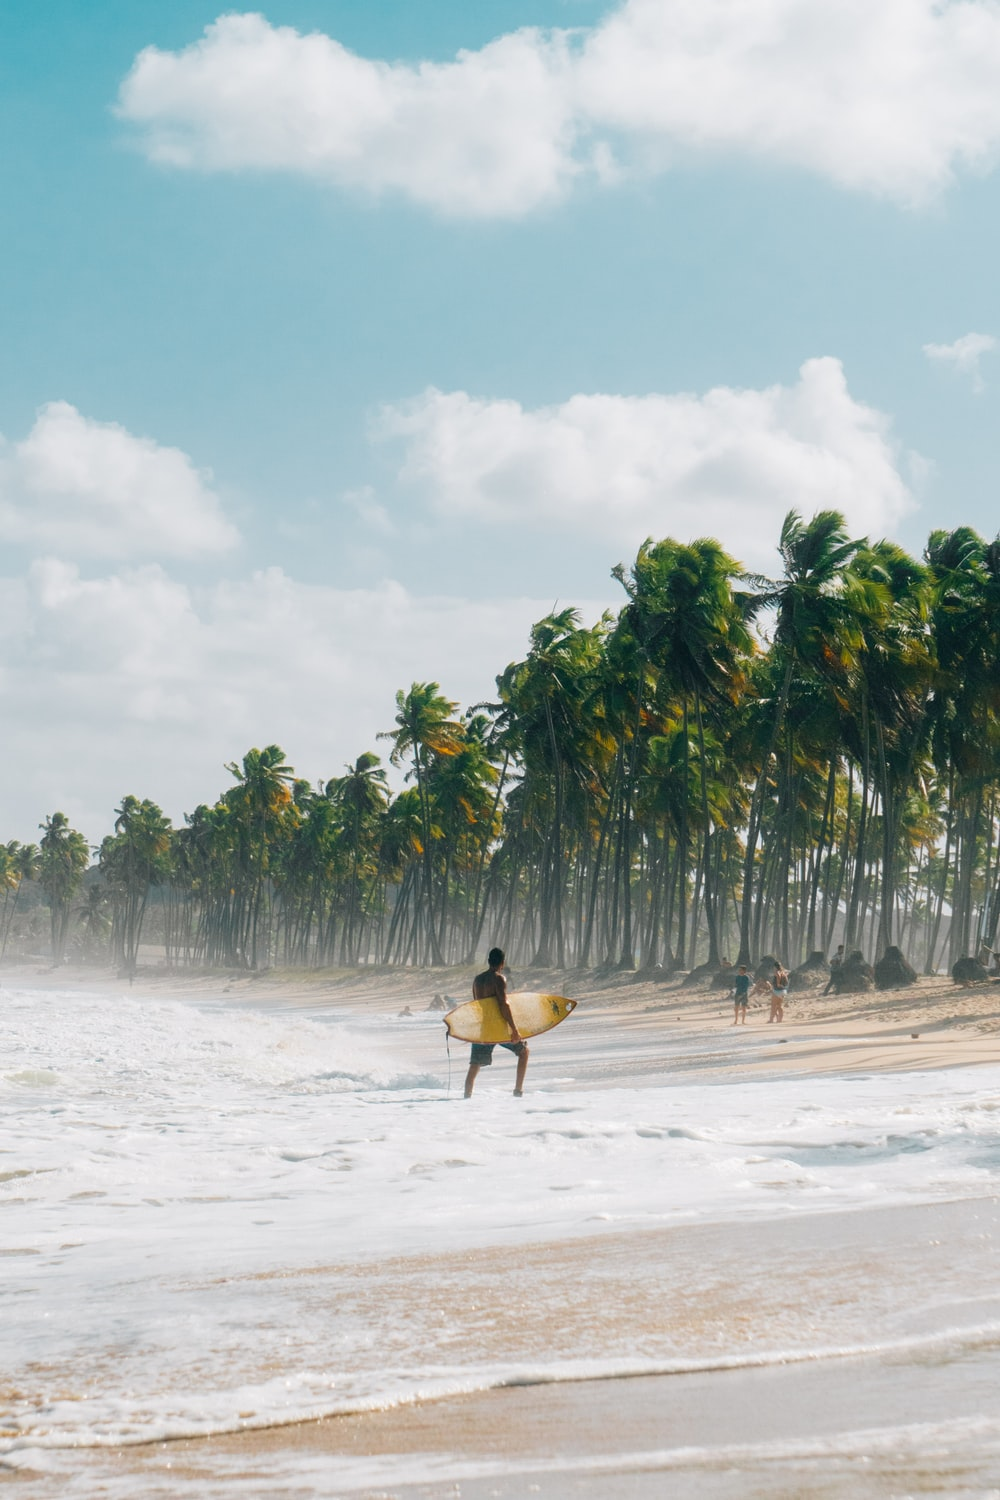 person in yellow shirt carrying brown surfboard walking on beach during daytime